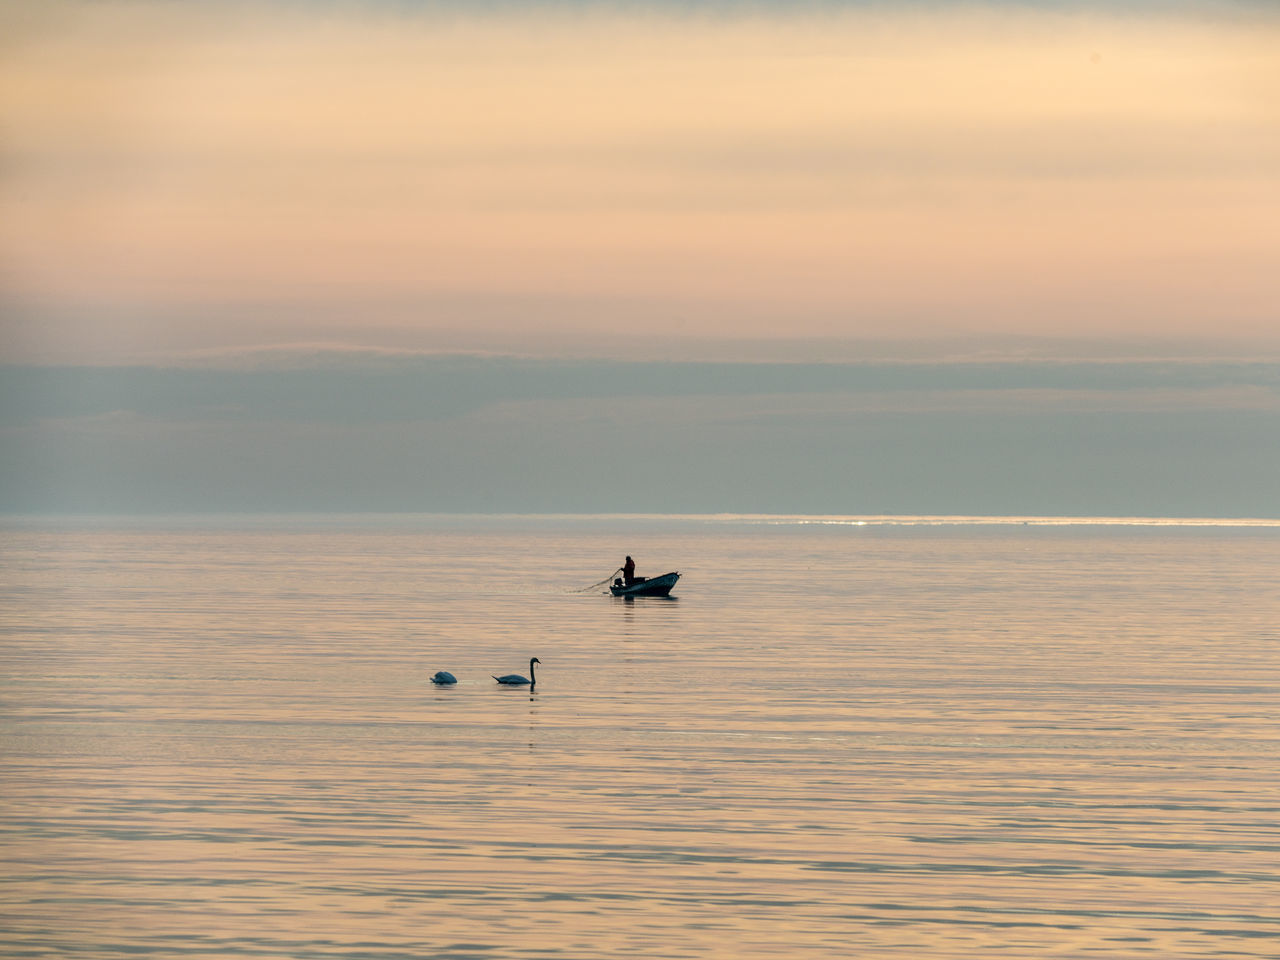 sunset, water, sea, nature, waterfront, animals in the wild, beauty in nature, scenics, outdoors, one animal, animal wildlife, sky, tranquility, tranquil scene, animal themes, no people, horizon over water, bird, nautical vessel, day